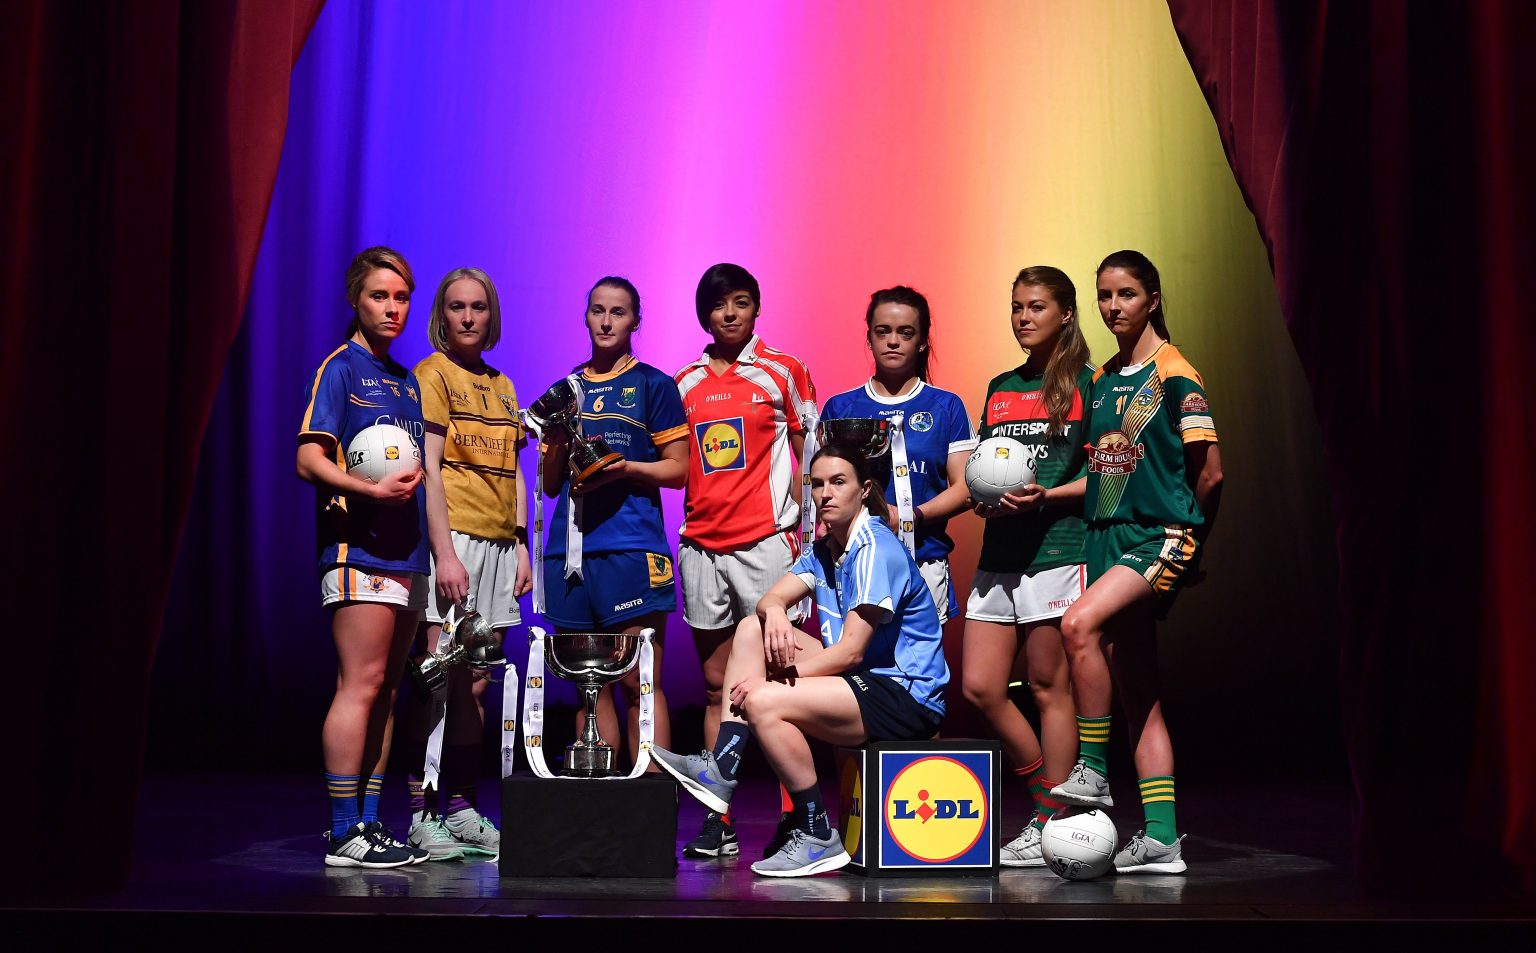 8 Players From The Counties Who Will Contest The Lidl Ladies National Football League Finals On Stage At The Helix